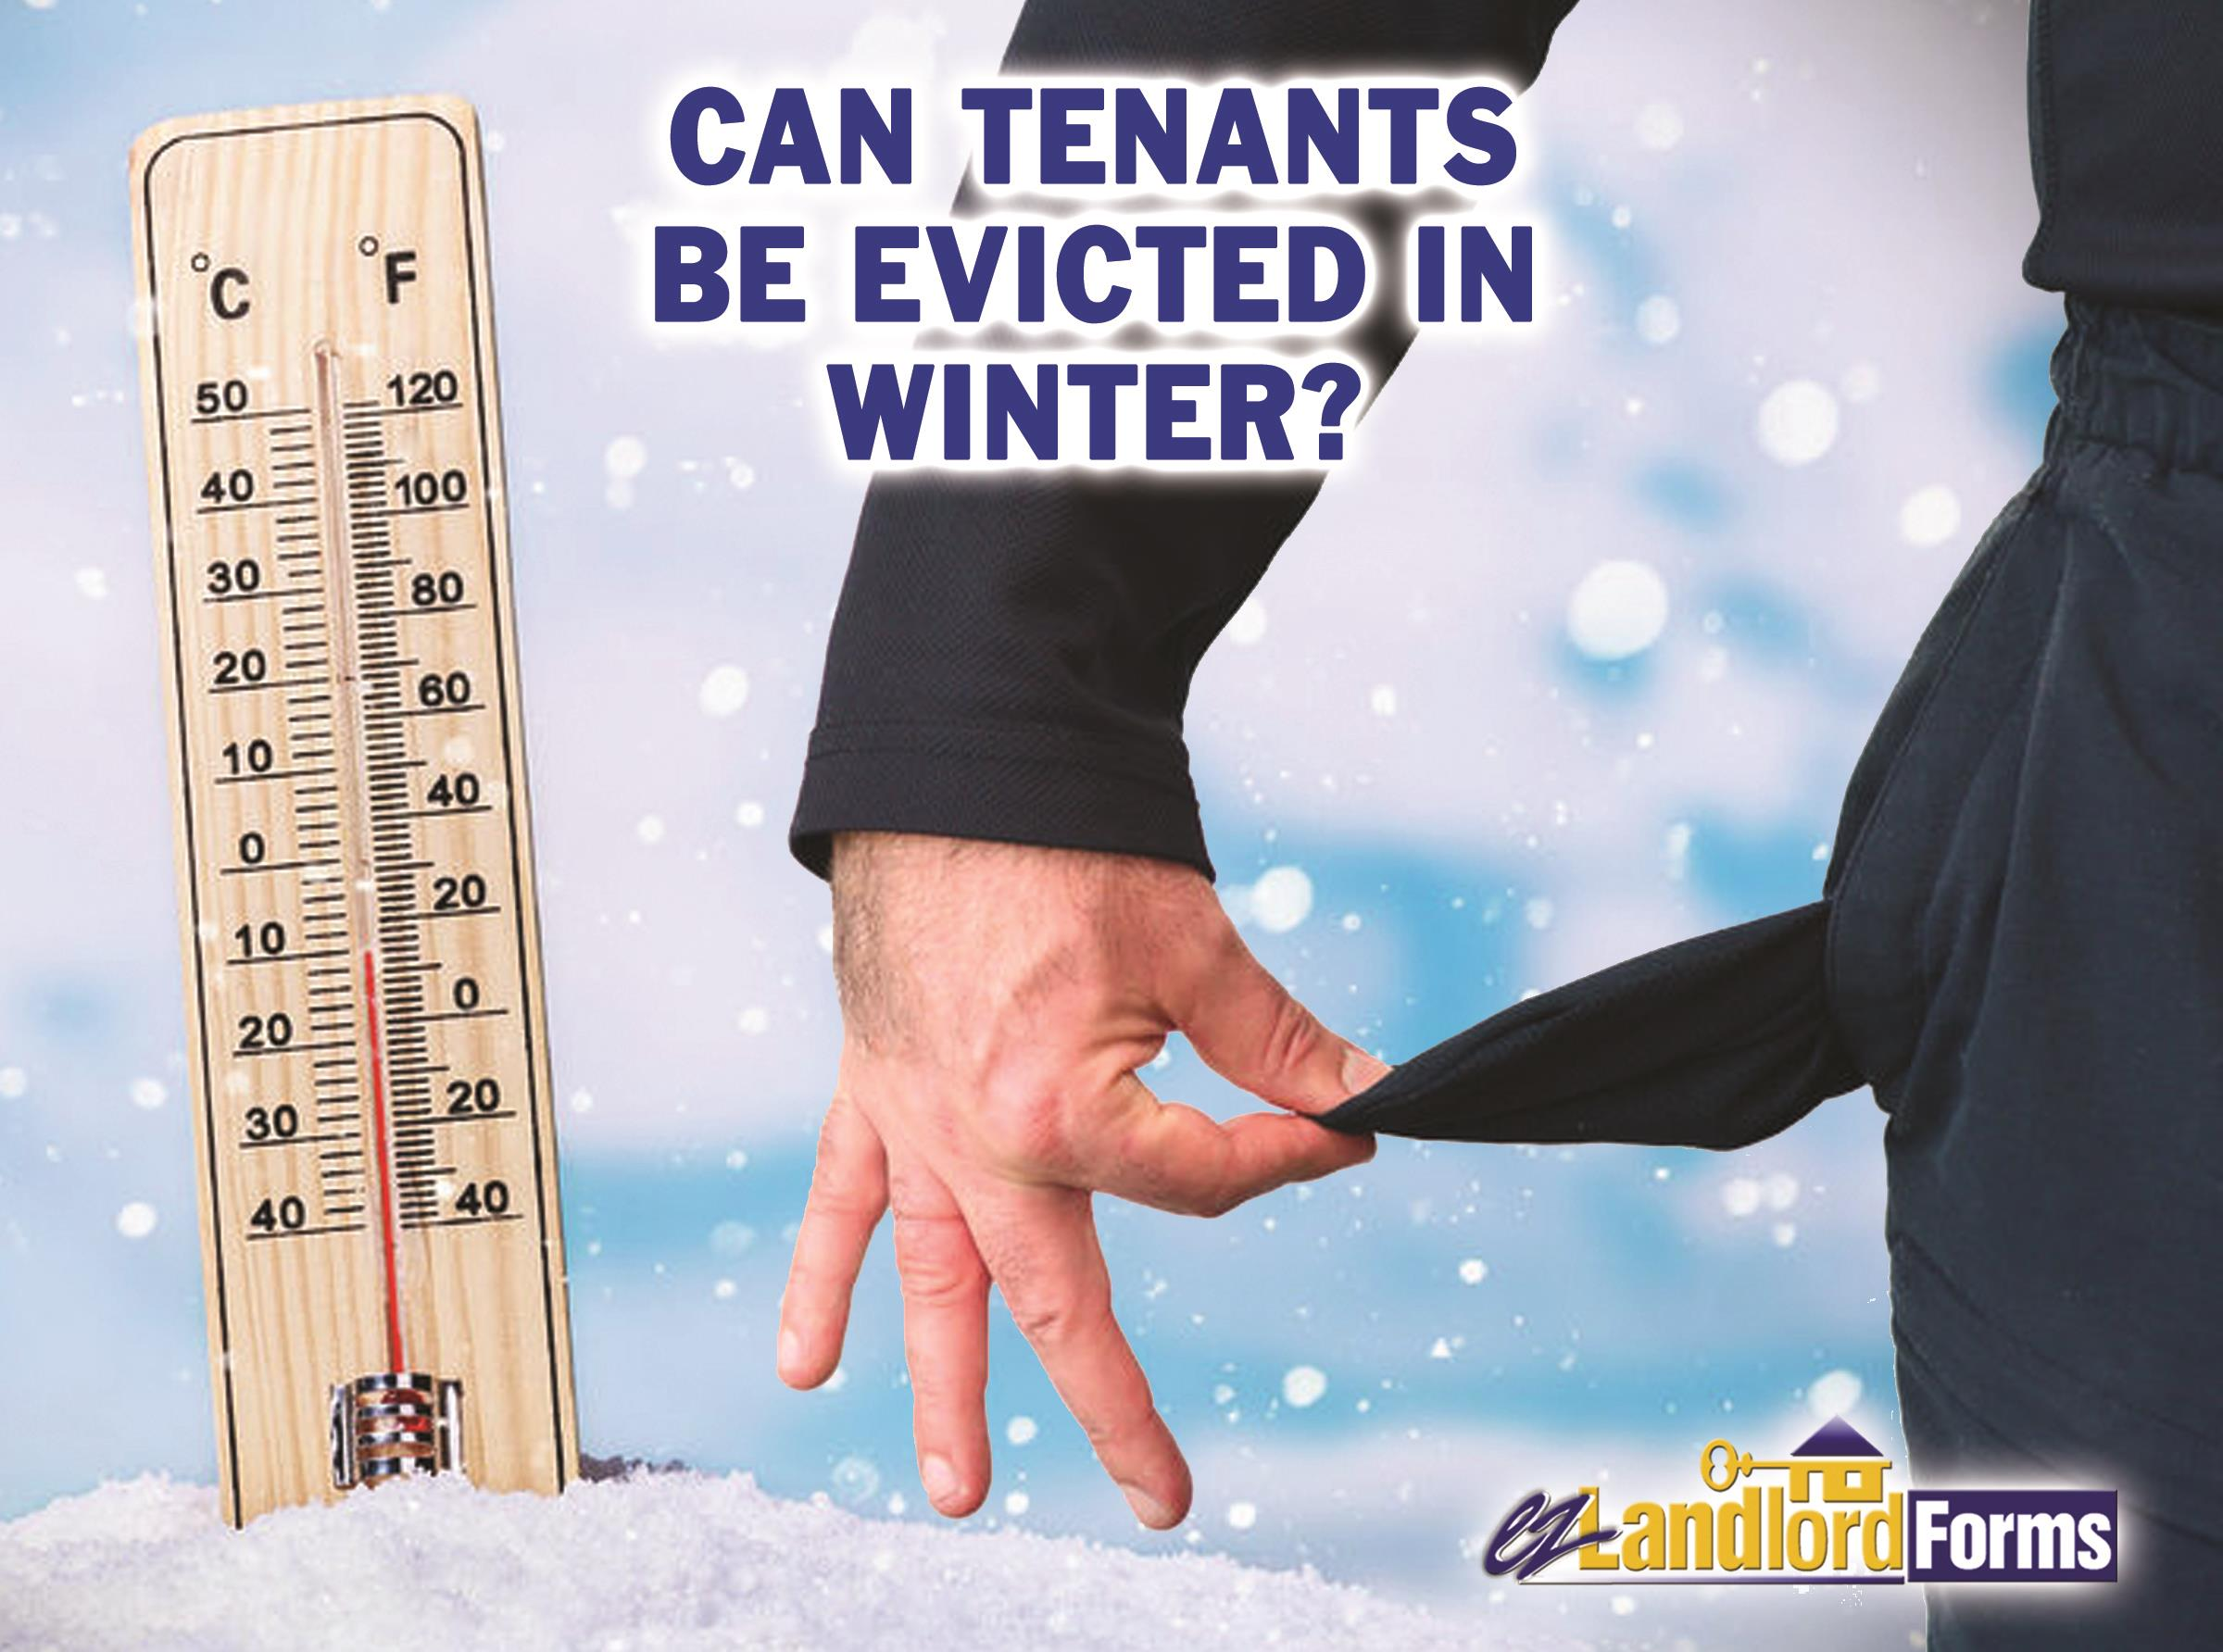 Can_Tenants_Be_Evicted_in_Winter_10-29-17